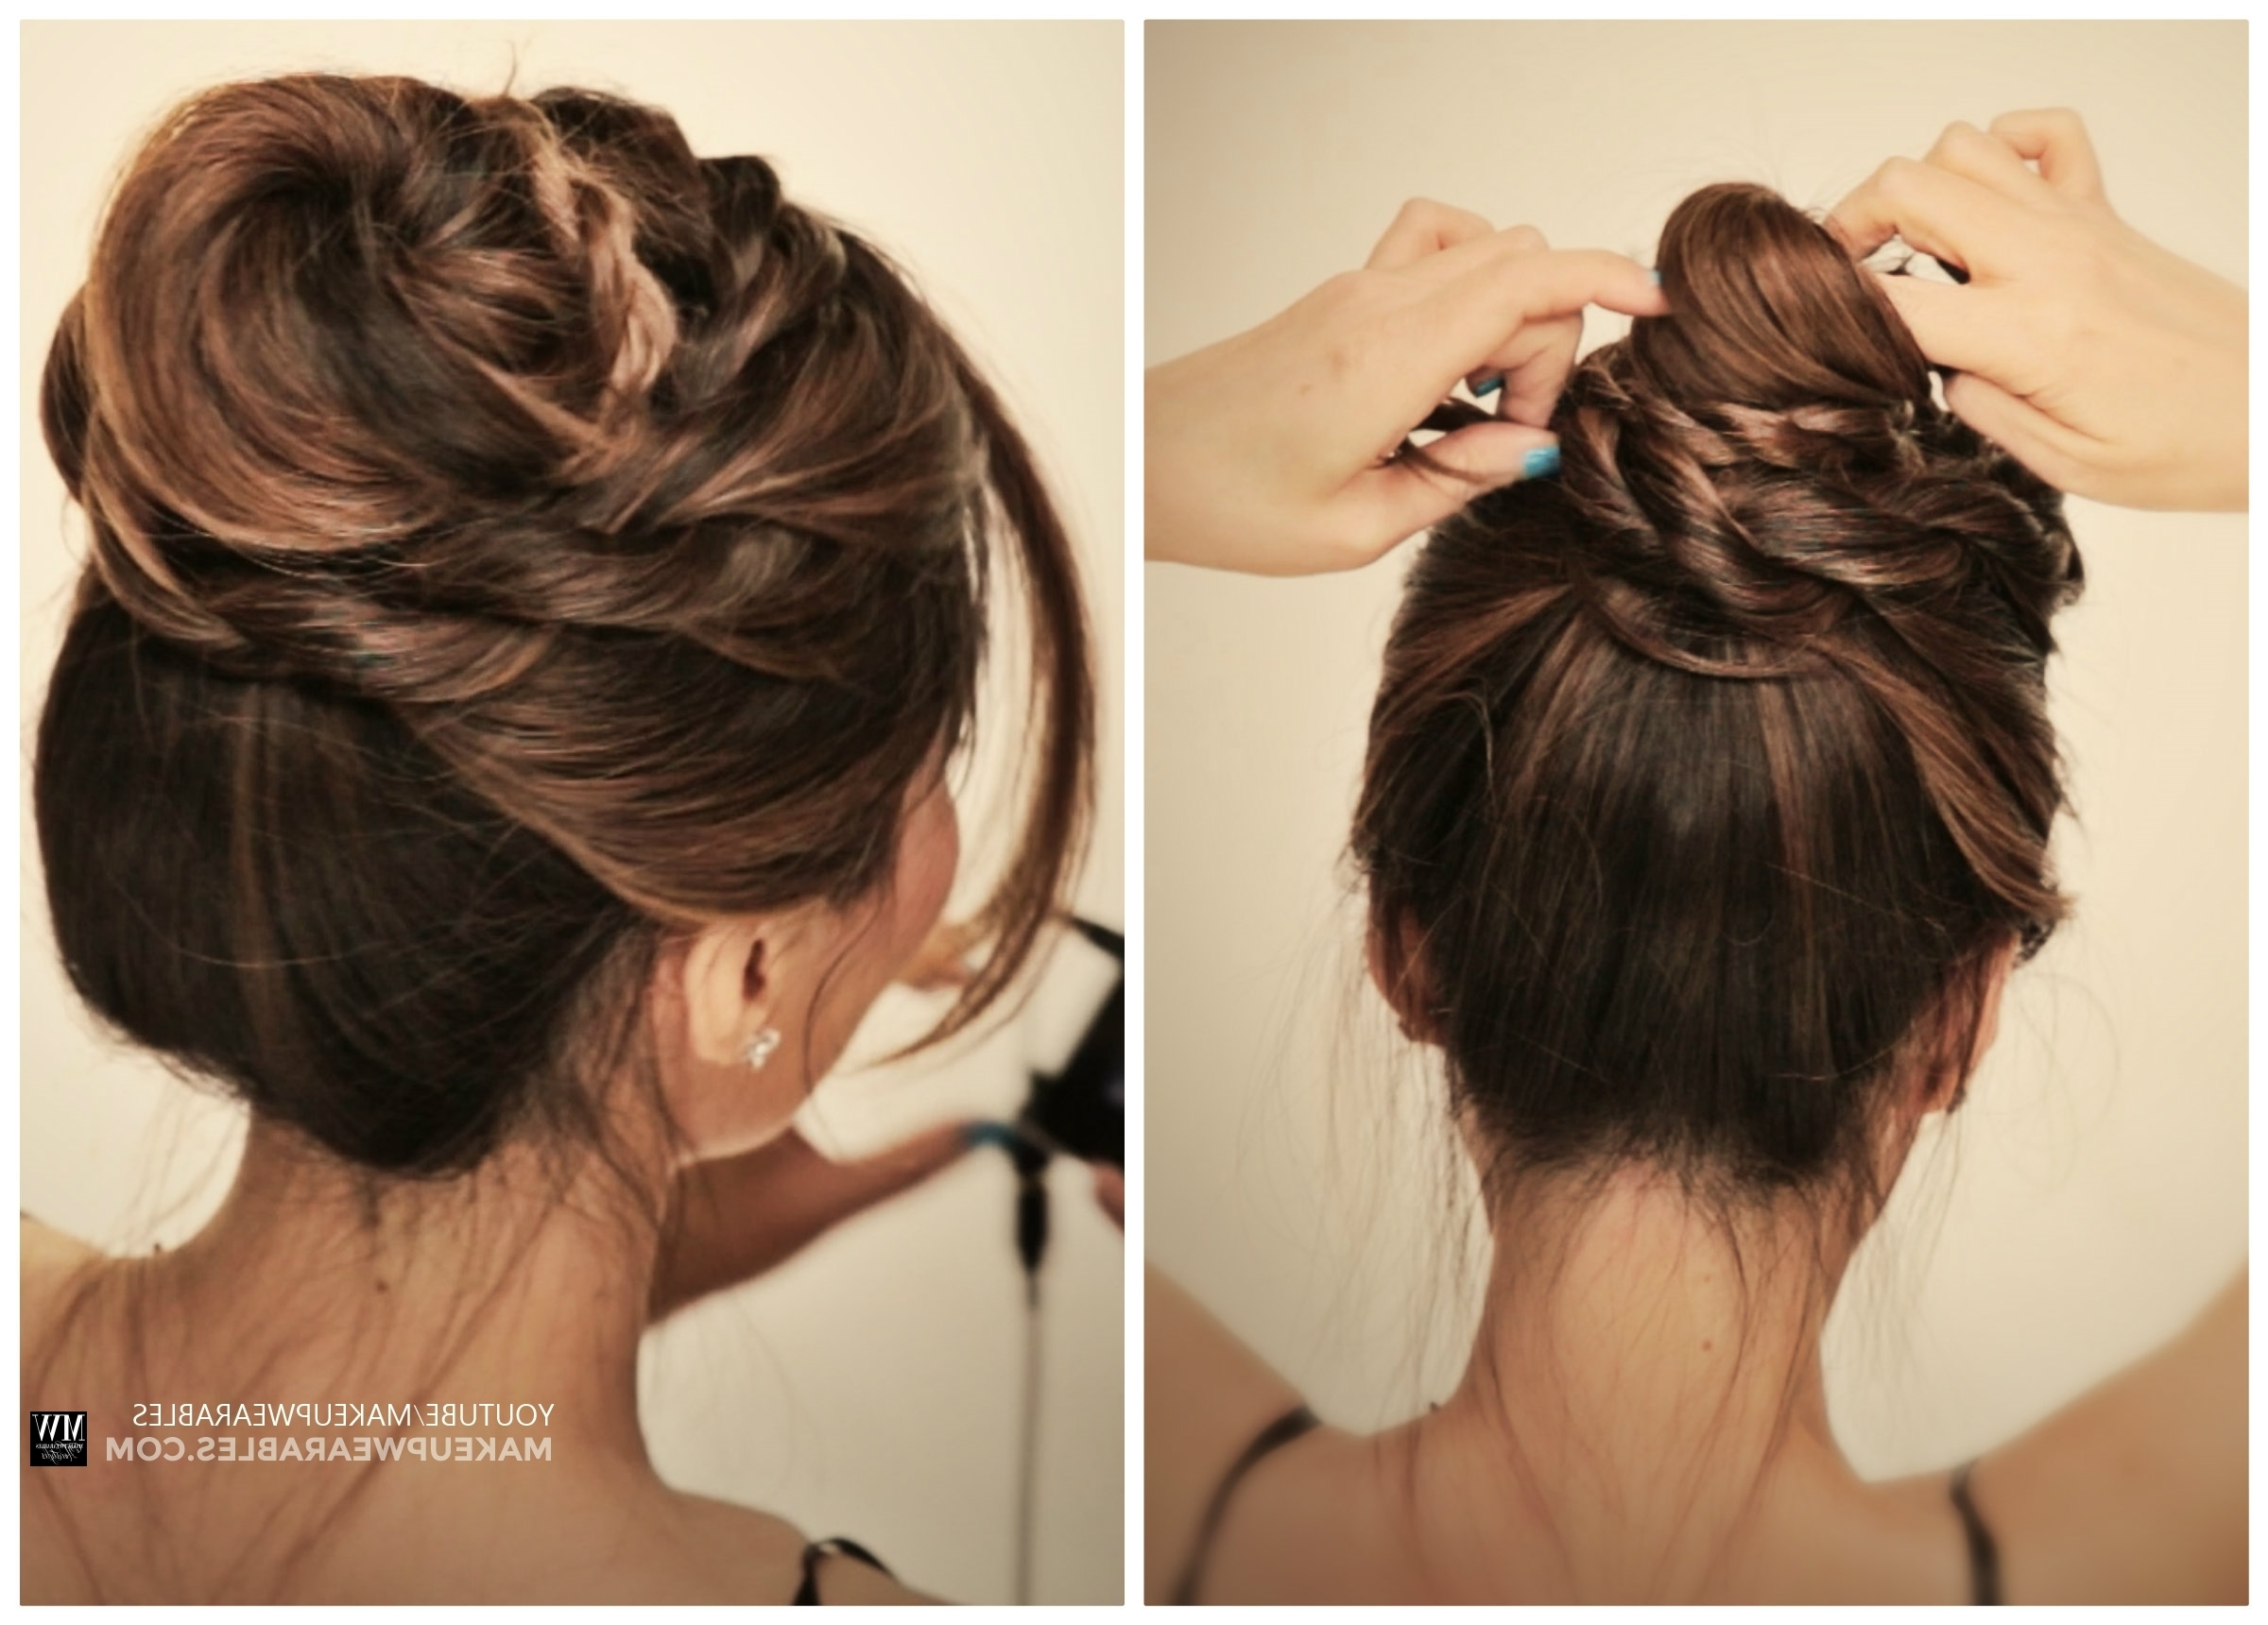 Cute Messy Bun Braids Ballerina Twisted Updo Hairstyle | Medium Hair Pertaining To Quick And Easy Updo Hairstyles For Medium Hair (View 12 of 15)